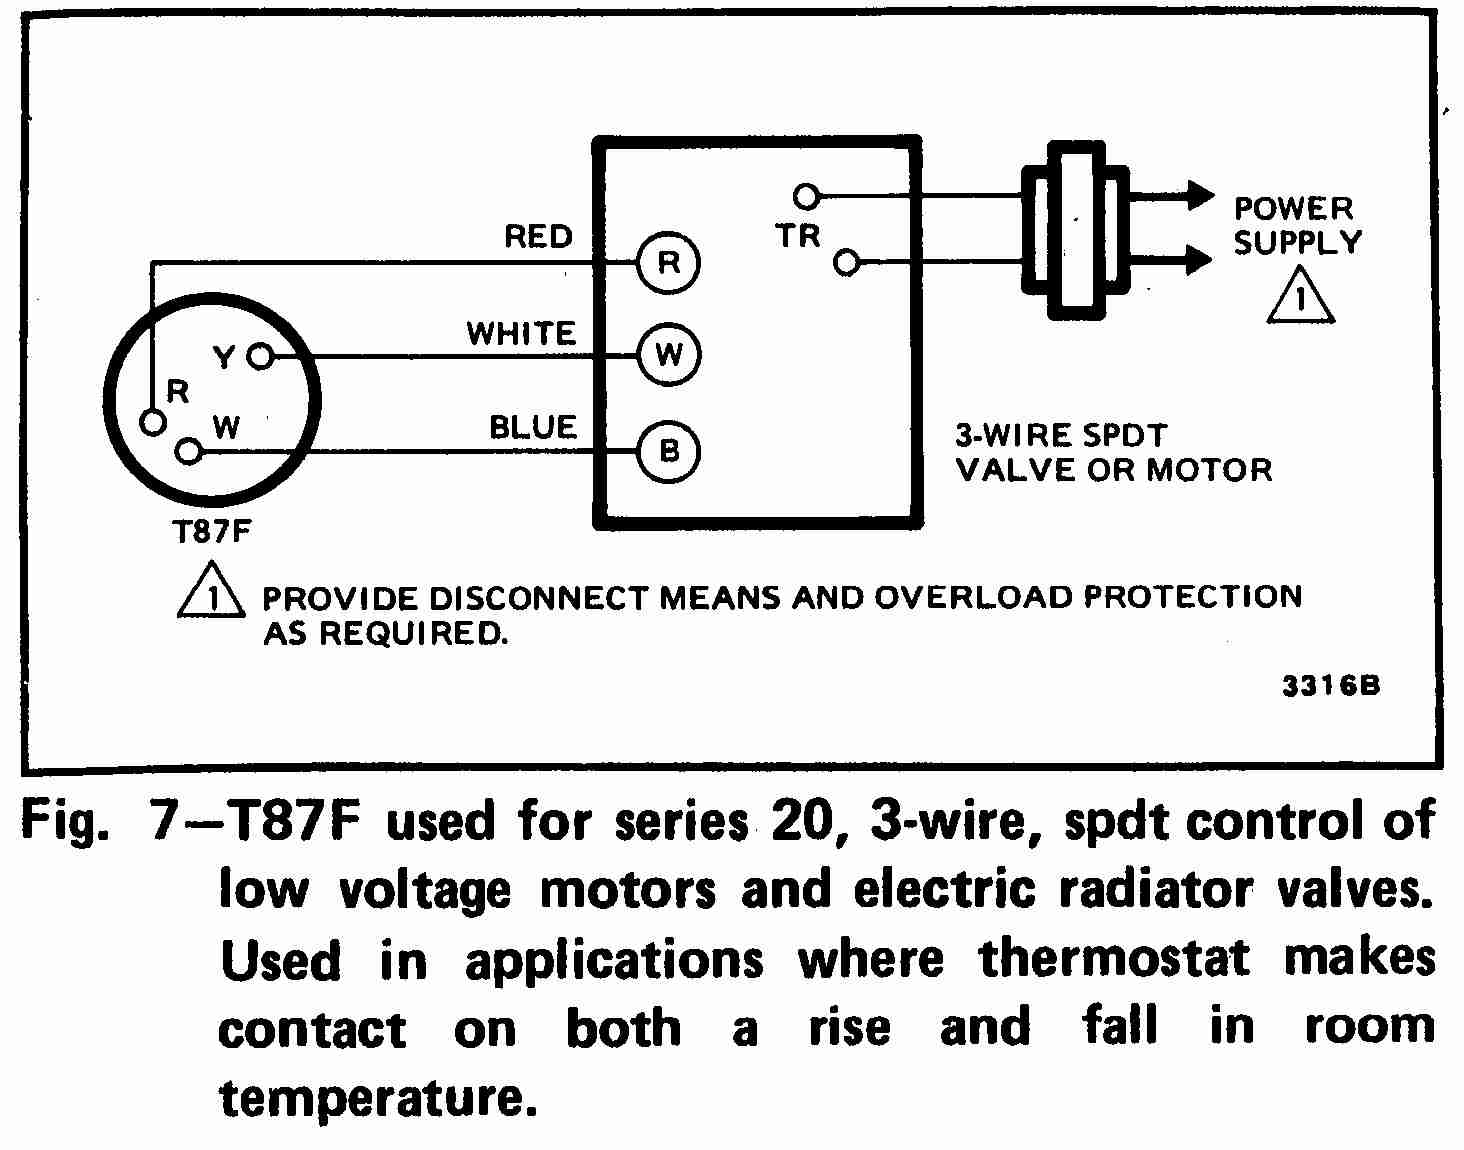 TT_T87F_0002_3W2_DJF room thermostat wiring diagrams for hvac systems Home Electrical Wiring Diagrams at bayanpartner.co